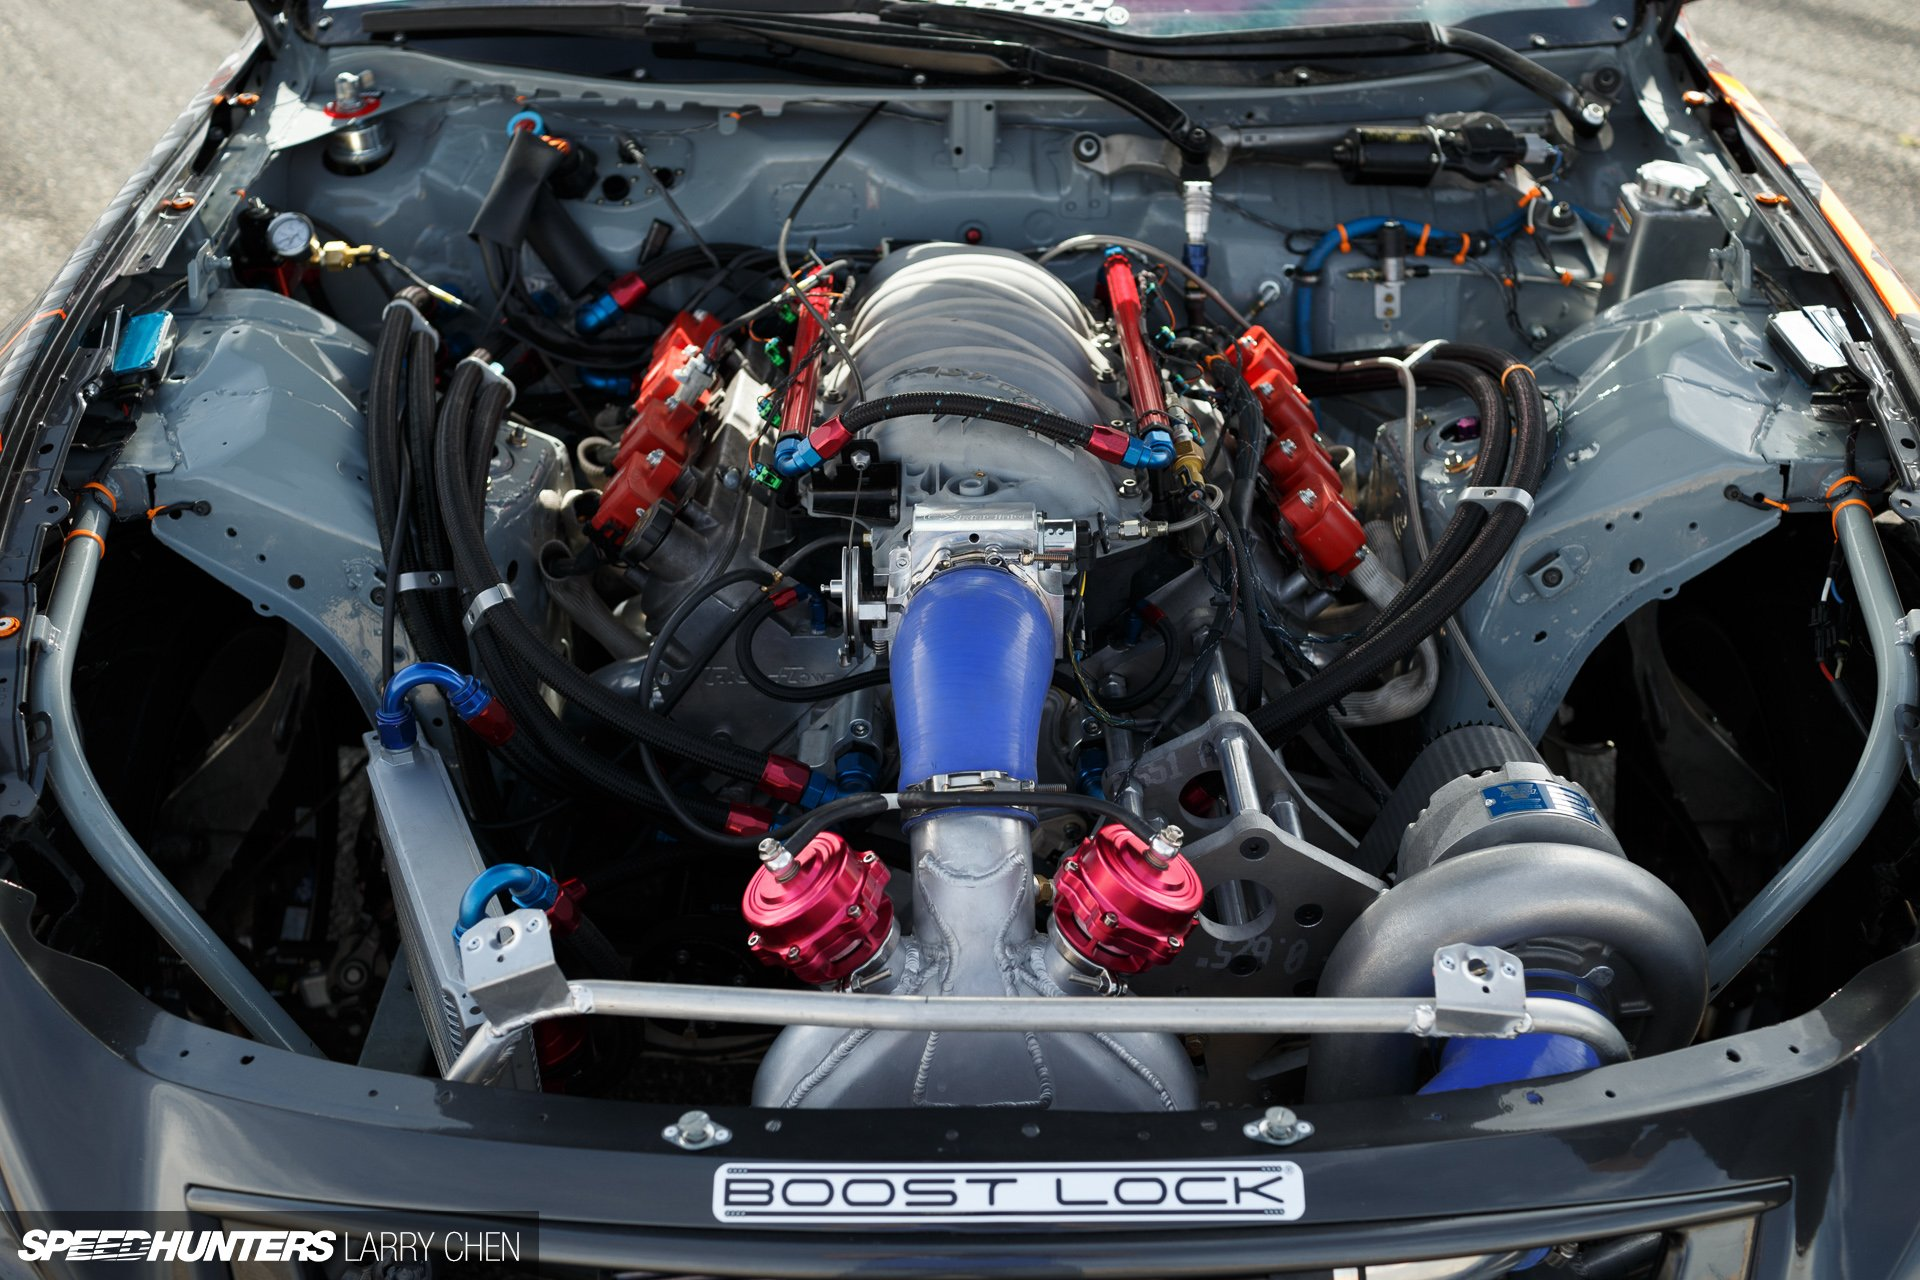 Fast And Furious 7 Cars Wallpapers Download 2014 Infiniti G37 Formula Drift Race Racing Engine G